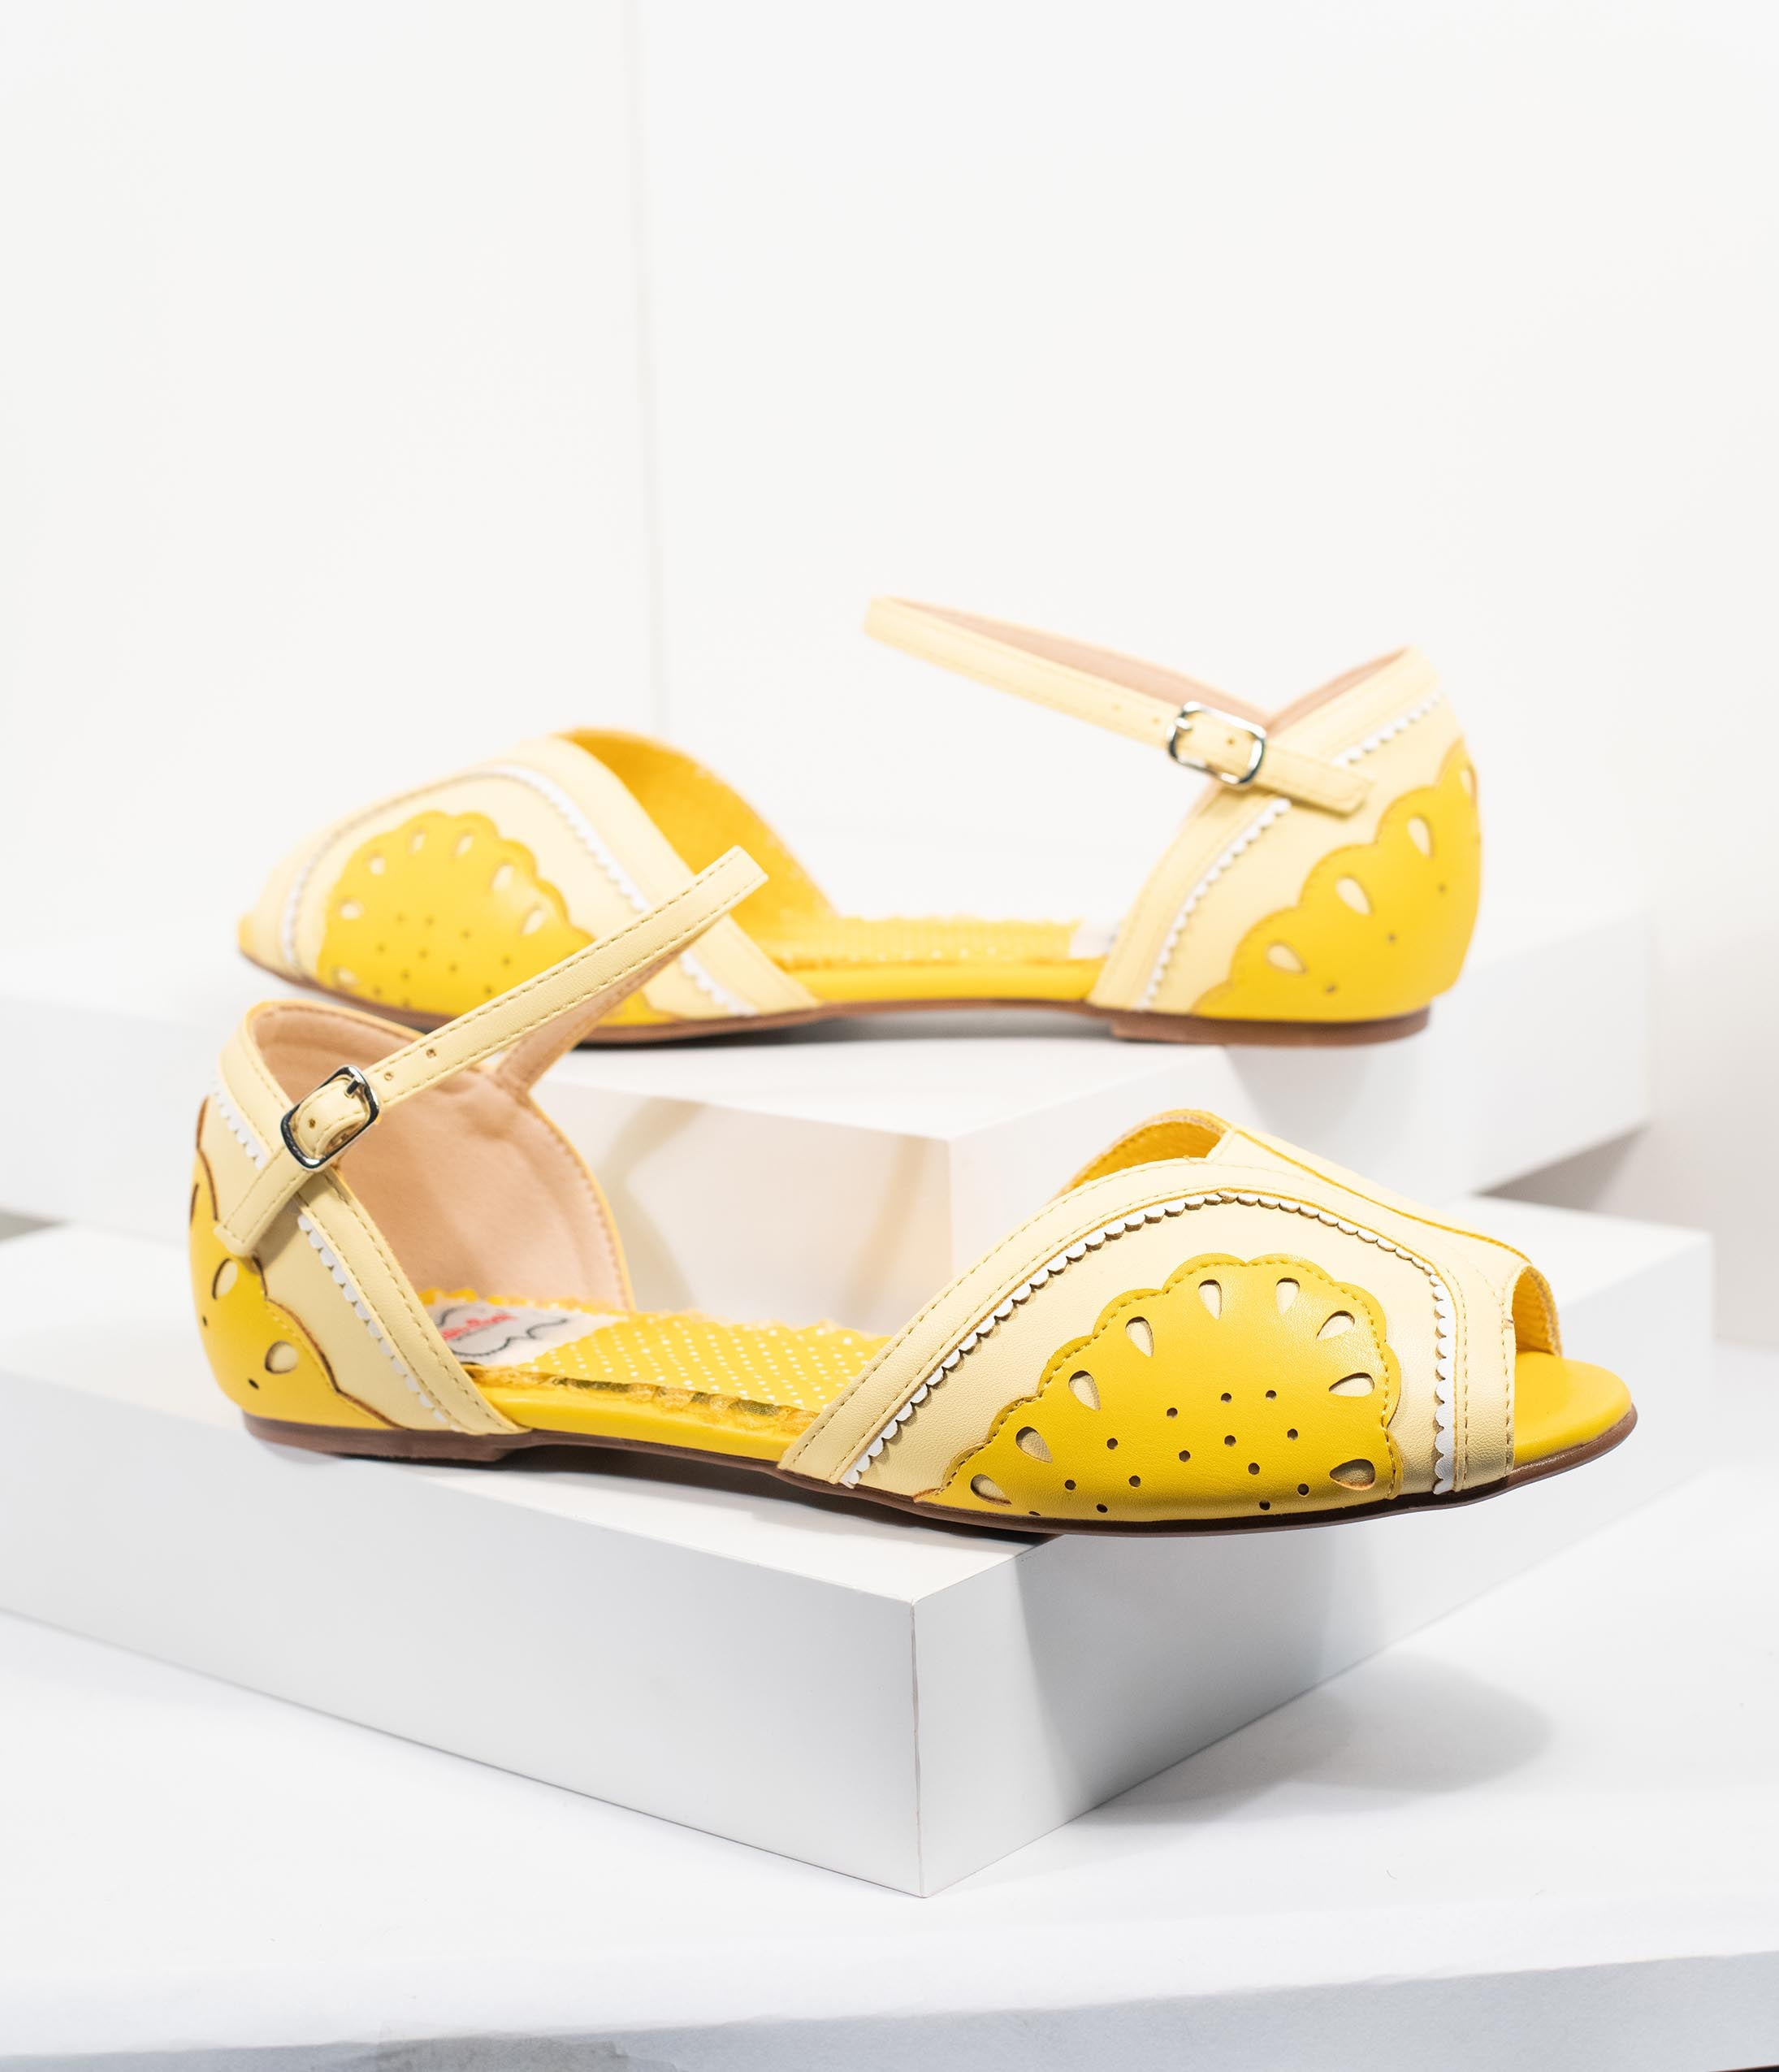 Pin Up Shoes- Heels, Pumps & Flats Bettie Page Yellow Leatherette Peep Toe FruitieLemon Sandals $80.00 AT vintagedancer.com